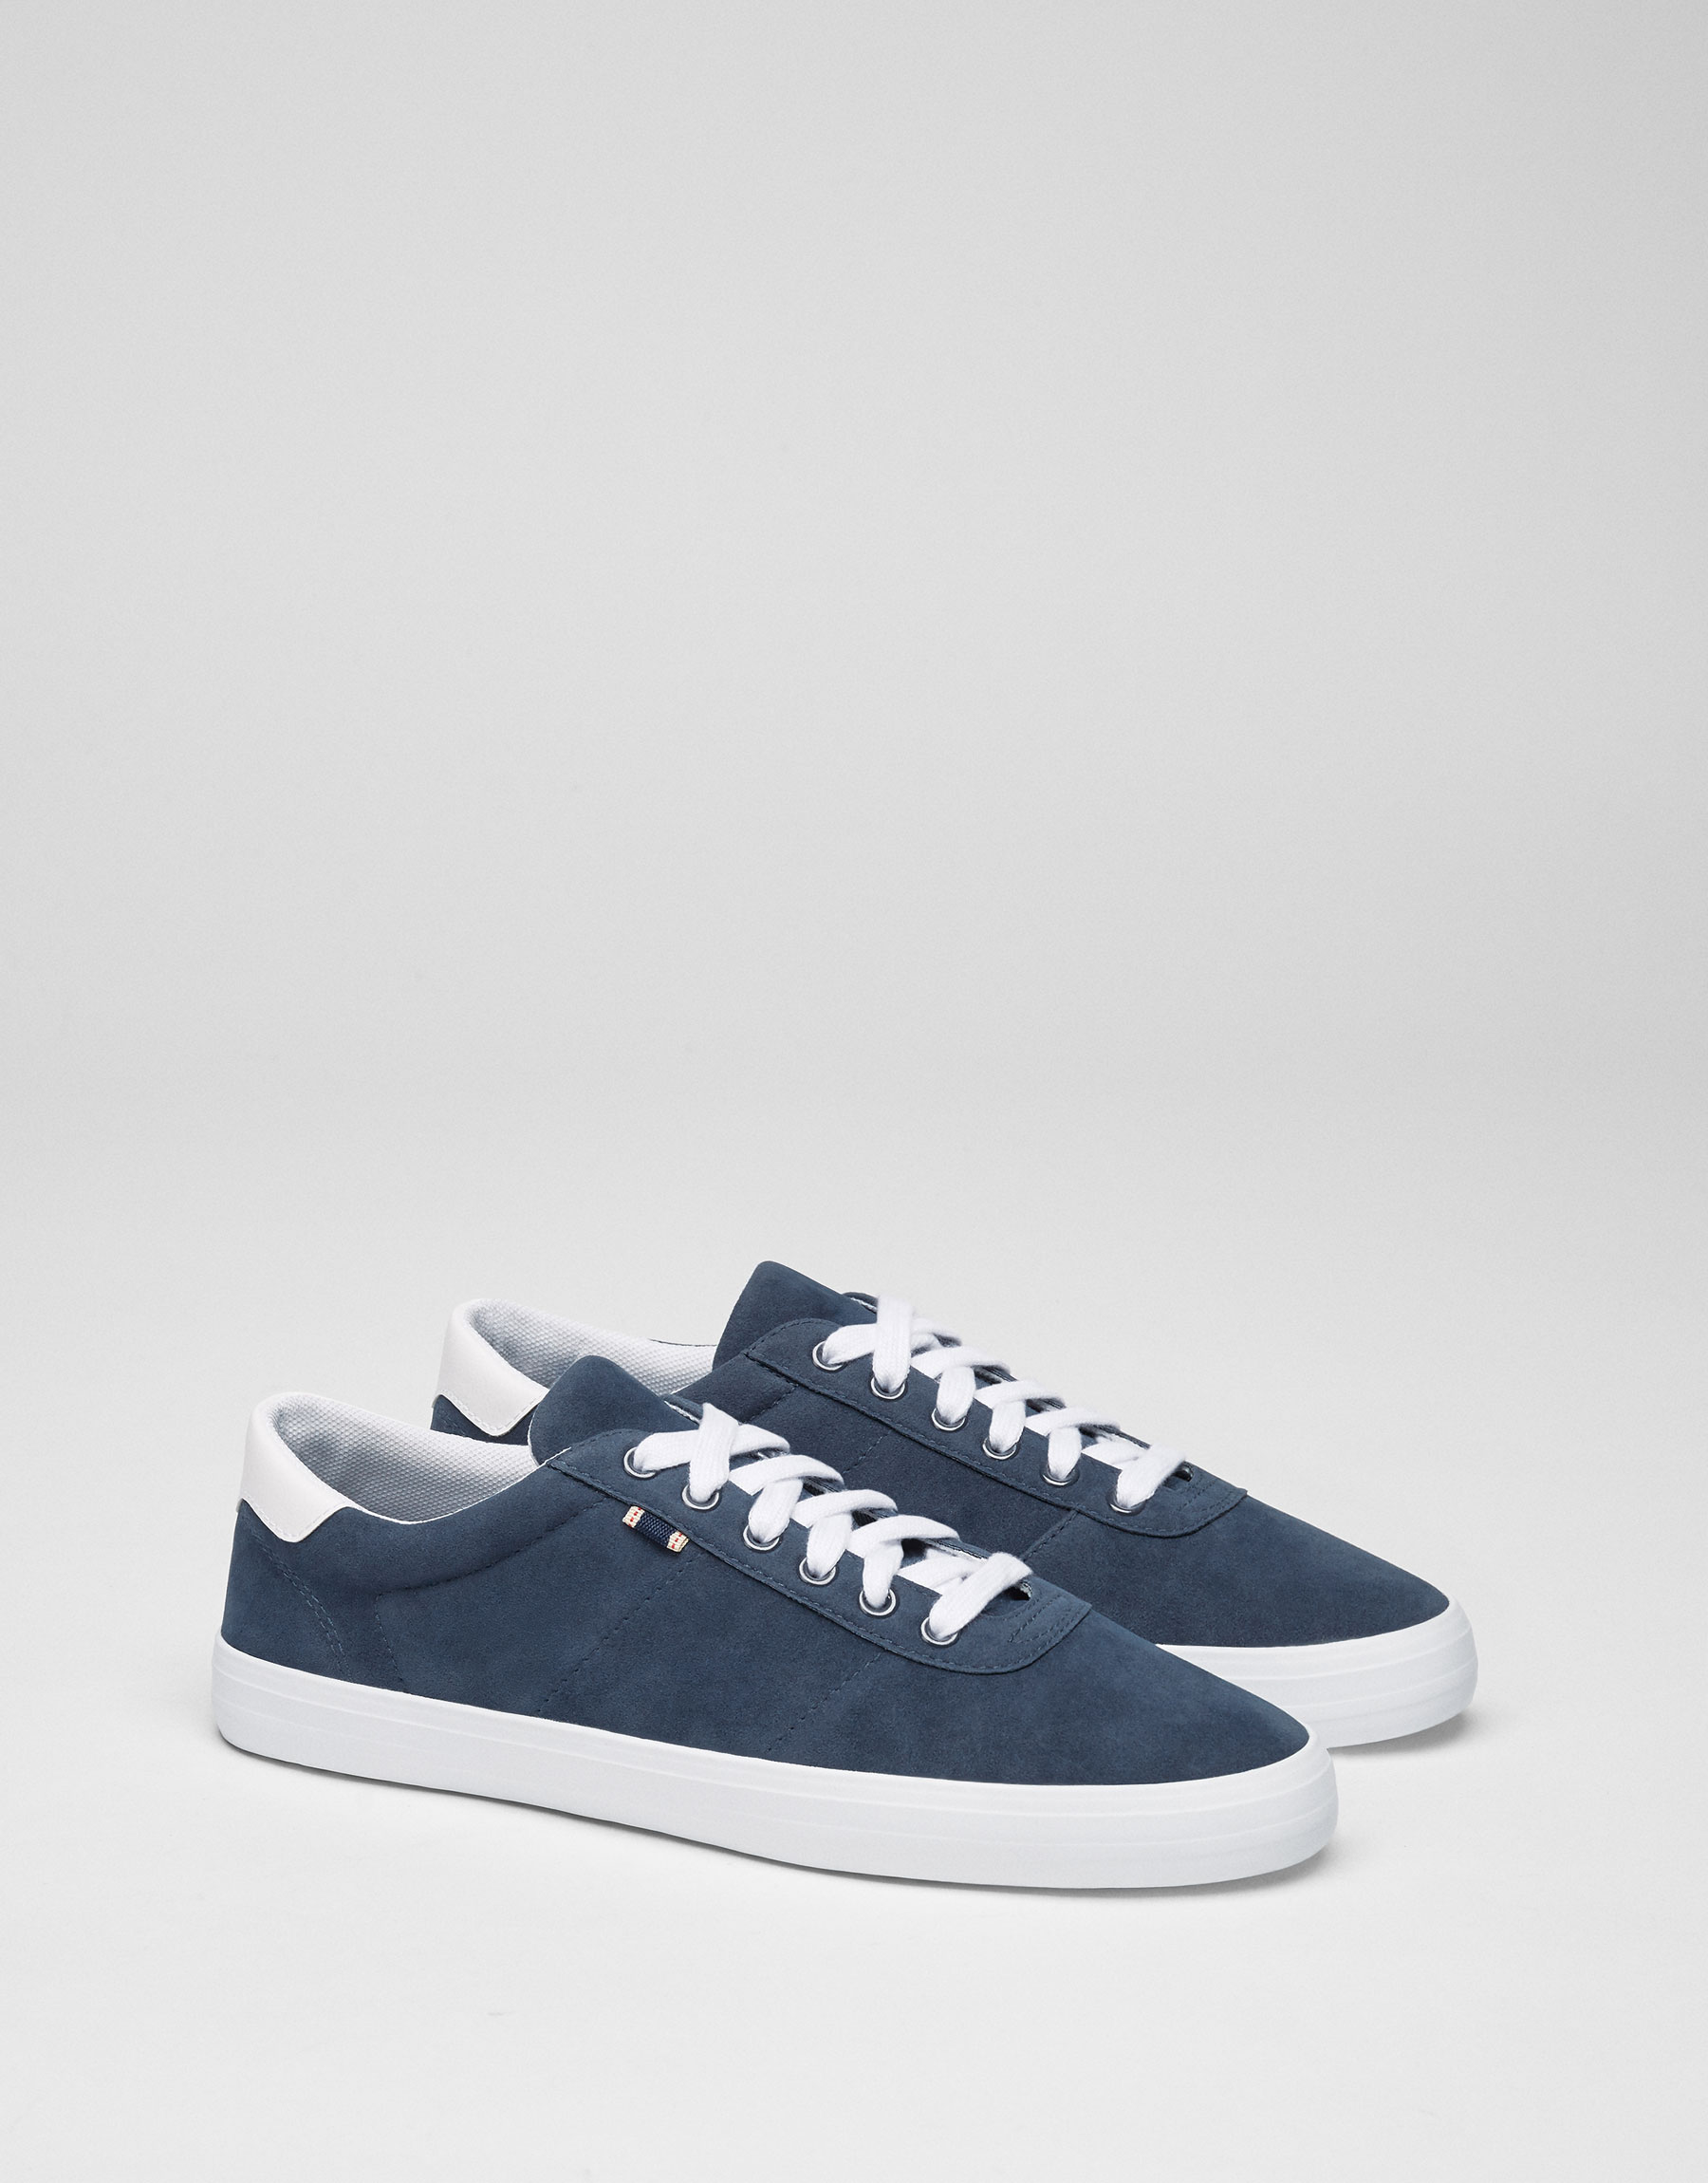 Basic blue sneakers with label